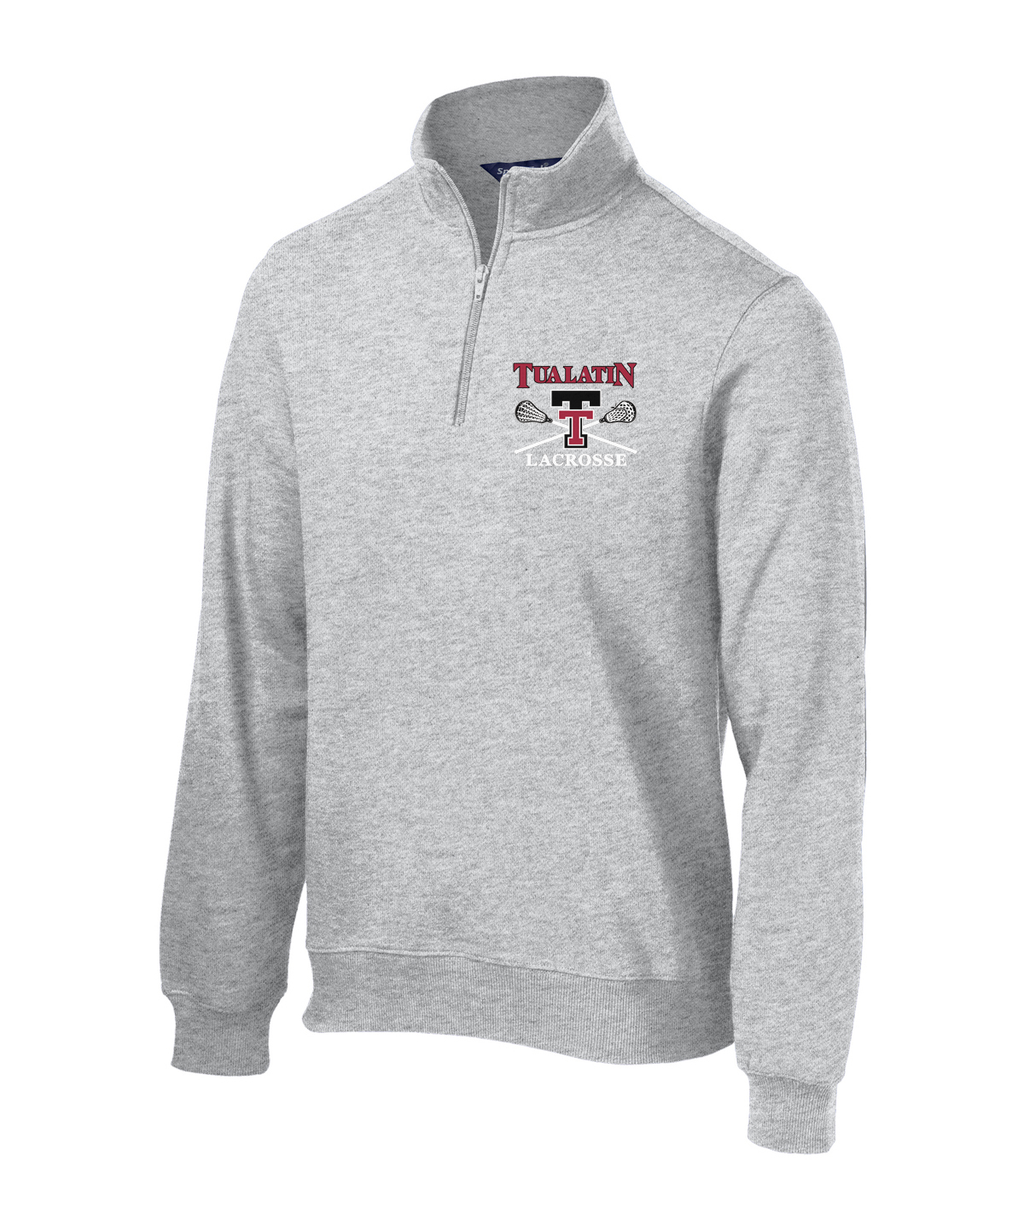 Tualatin Athletic Heather 1/4 Zip Fleece